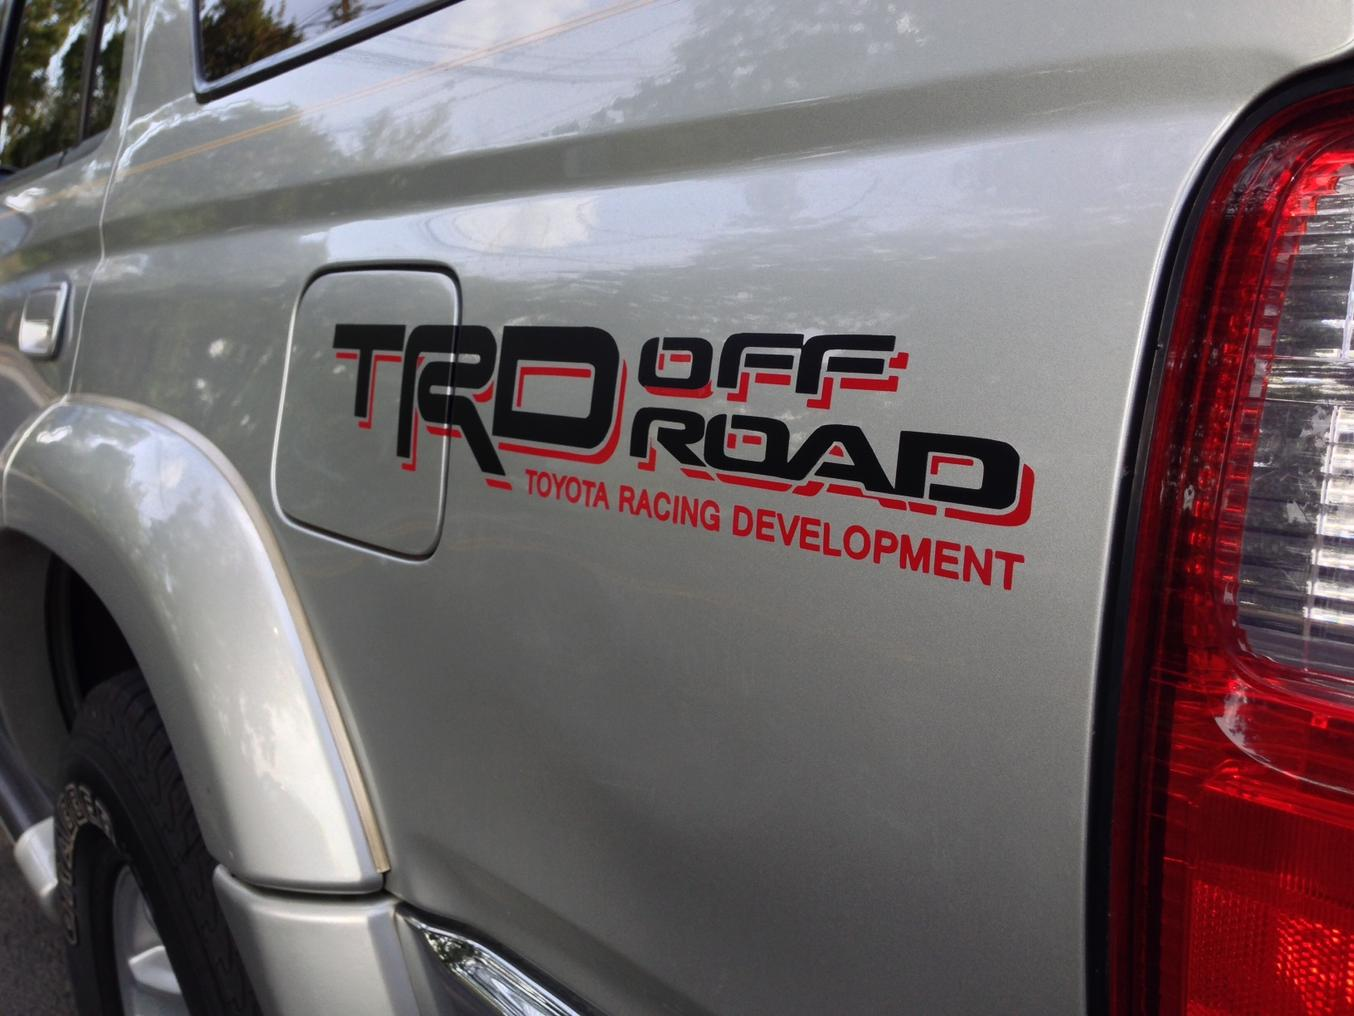 Trd decal placement photo 4 jpg